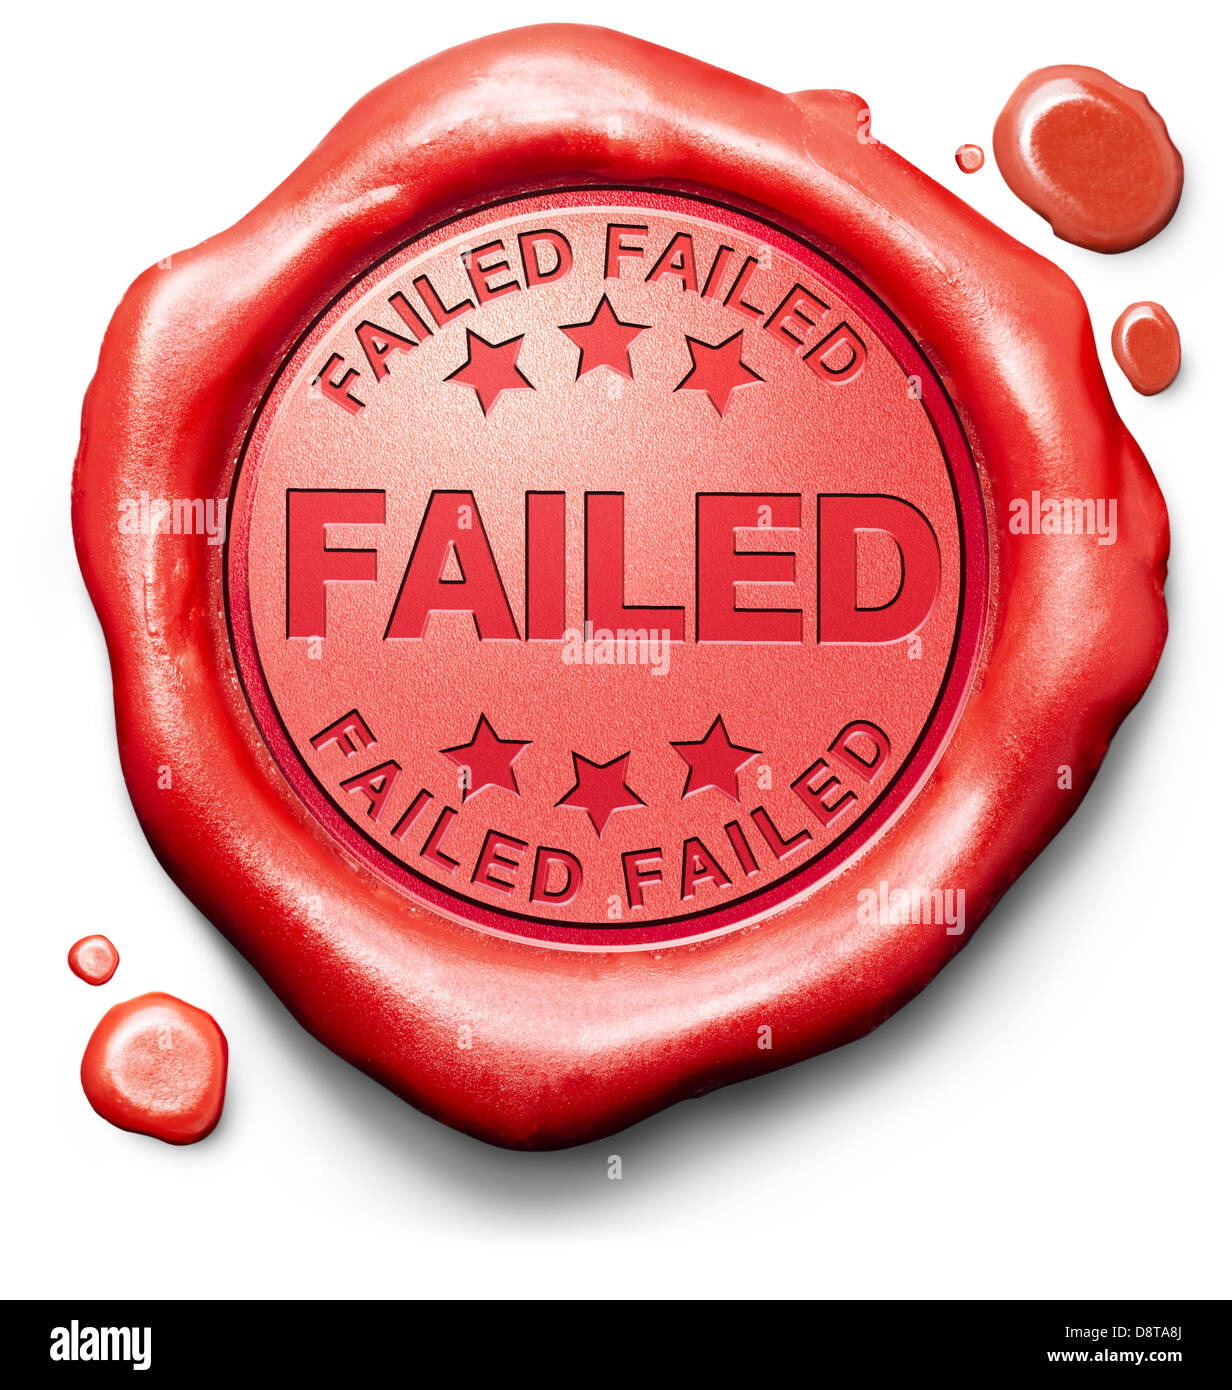 failed fail test or exam failing examination making mistake failure wrong answer sign icon stamp or label - Stock Image